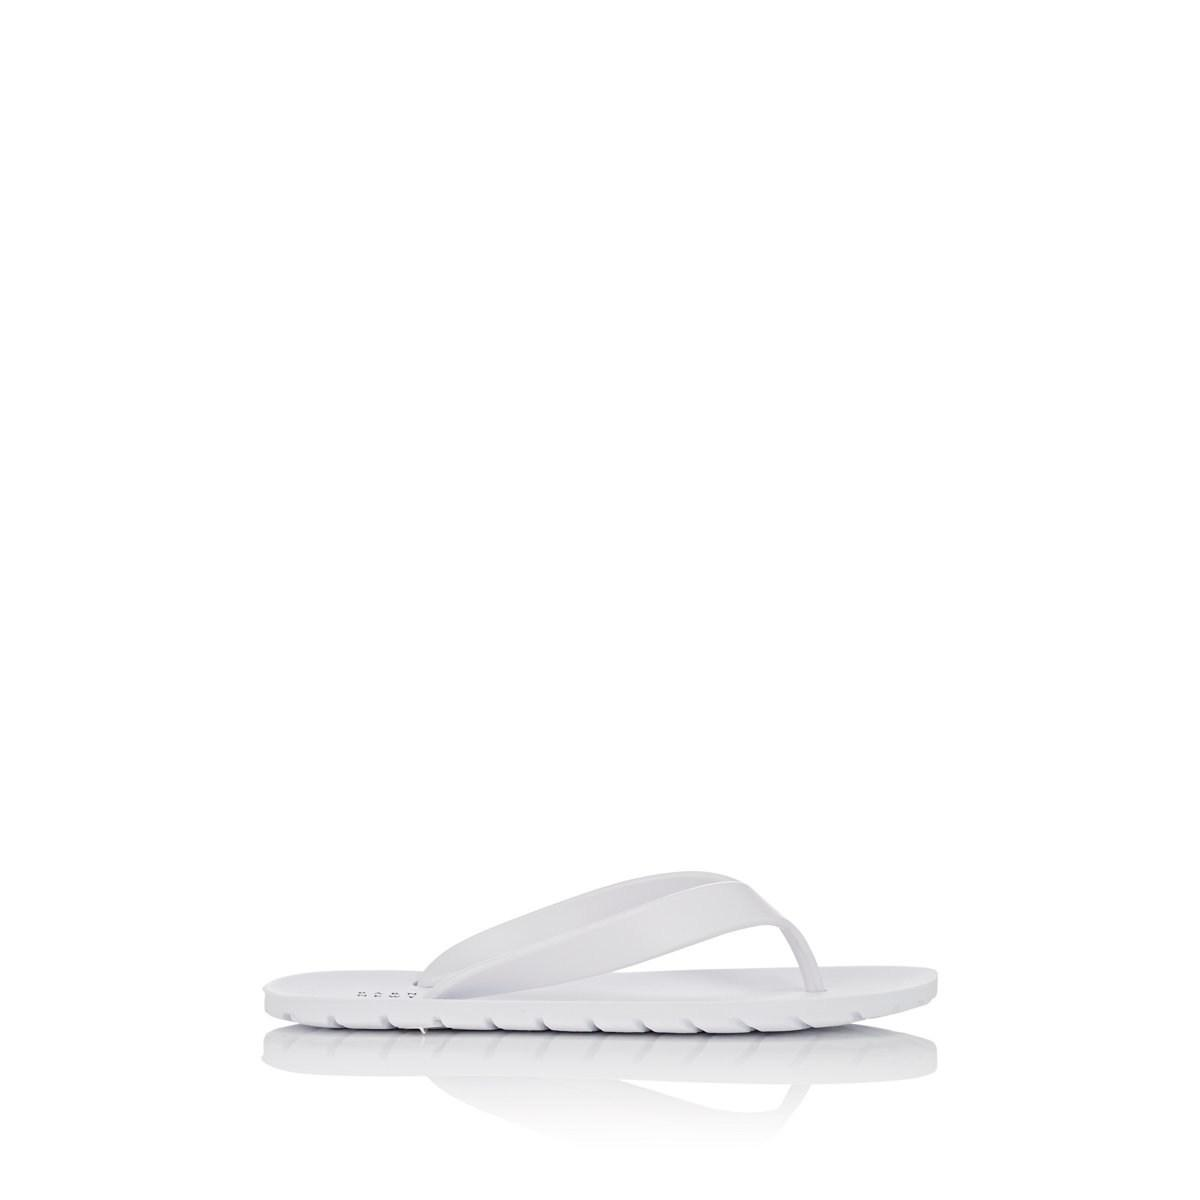 42de2ba1ec812 Lyst - Barneys New York Pvc Thong Sandals in White - Save 59%